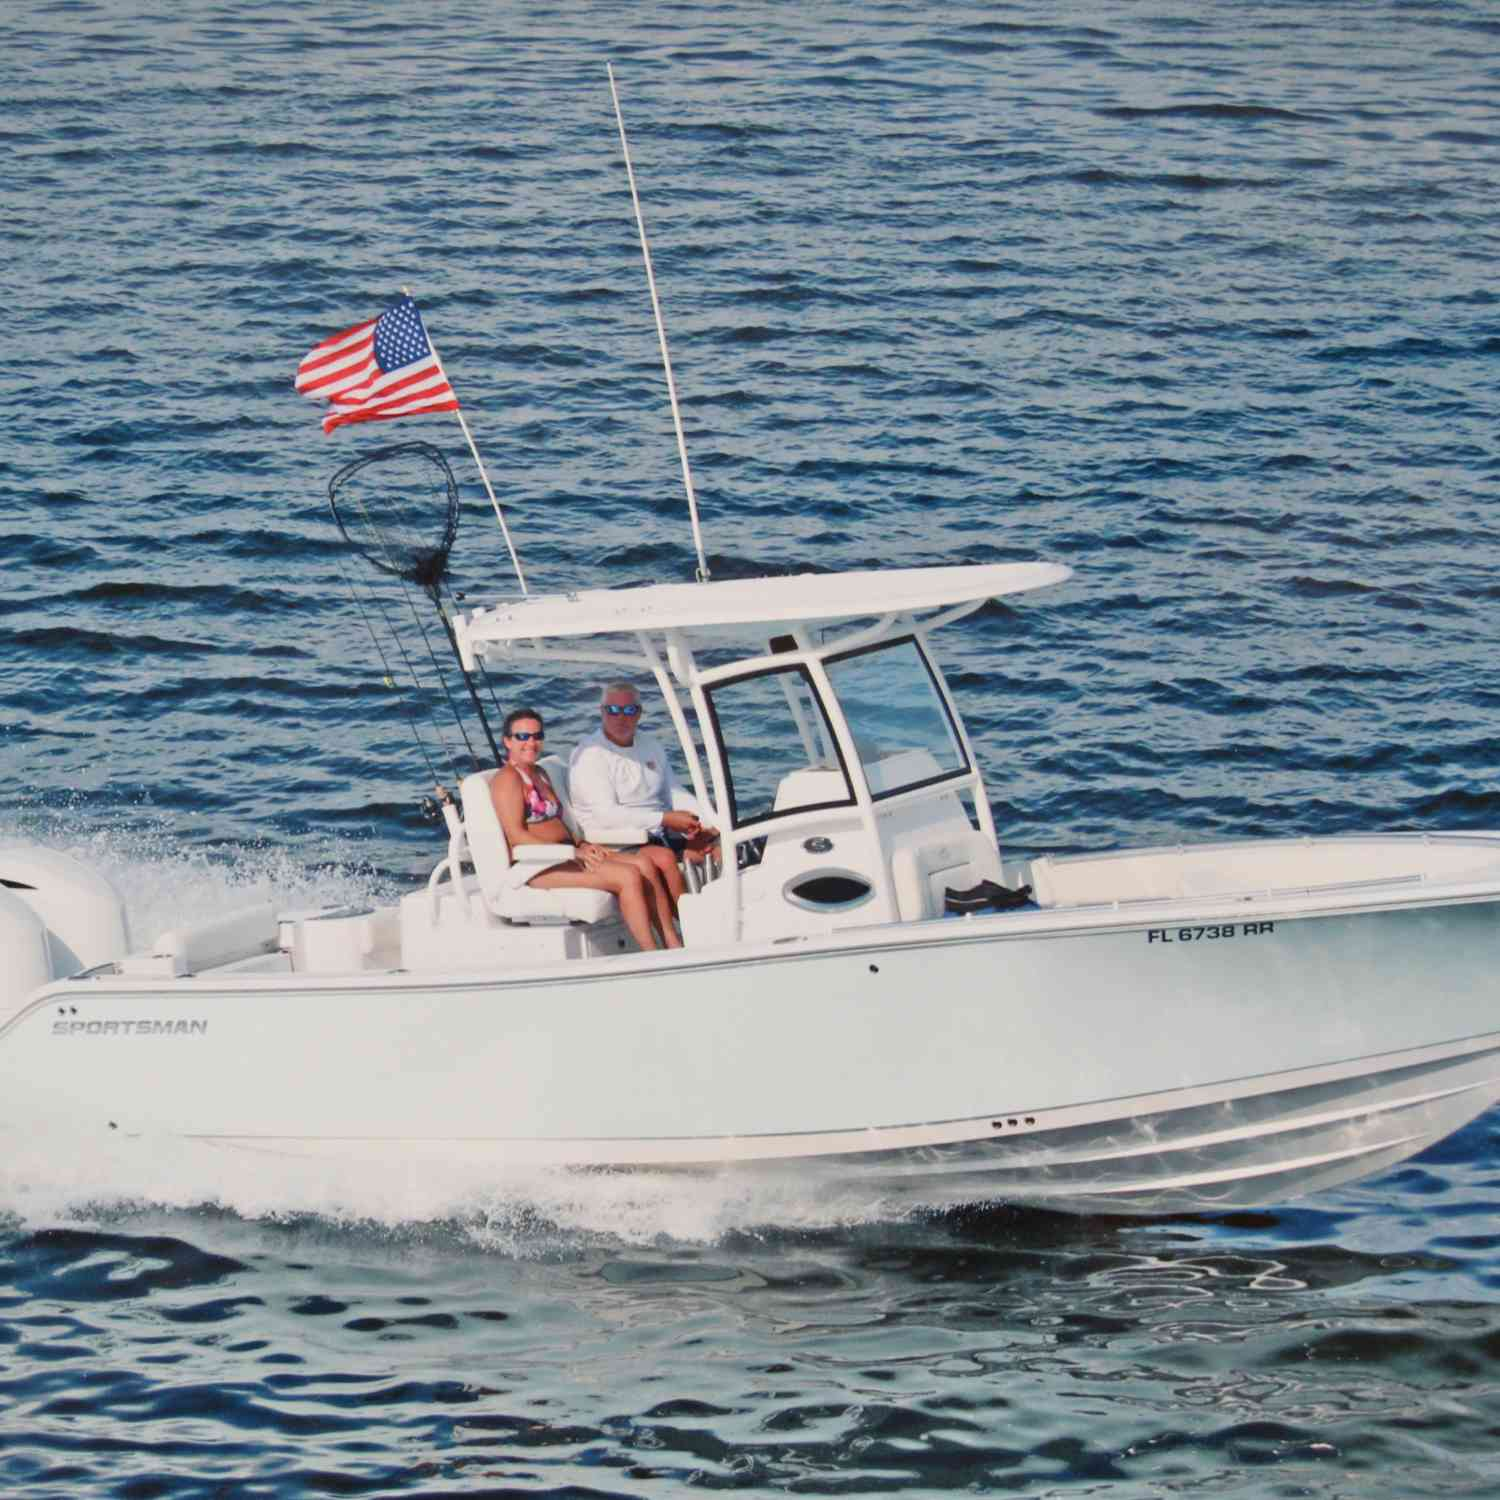 Title: Headin' Home - On board their Sportsman Open 282 Center Console - Location: Pine Island Sound, FL. Participating in the Photo Contest #SportsmanMay2019